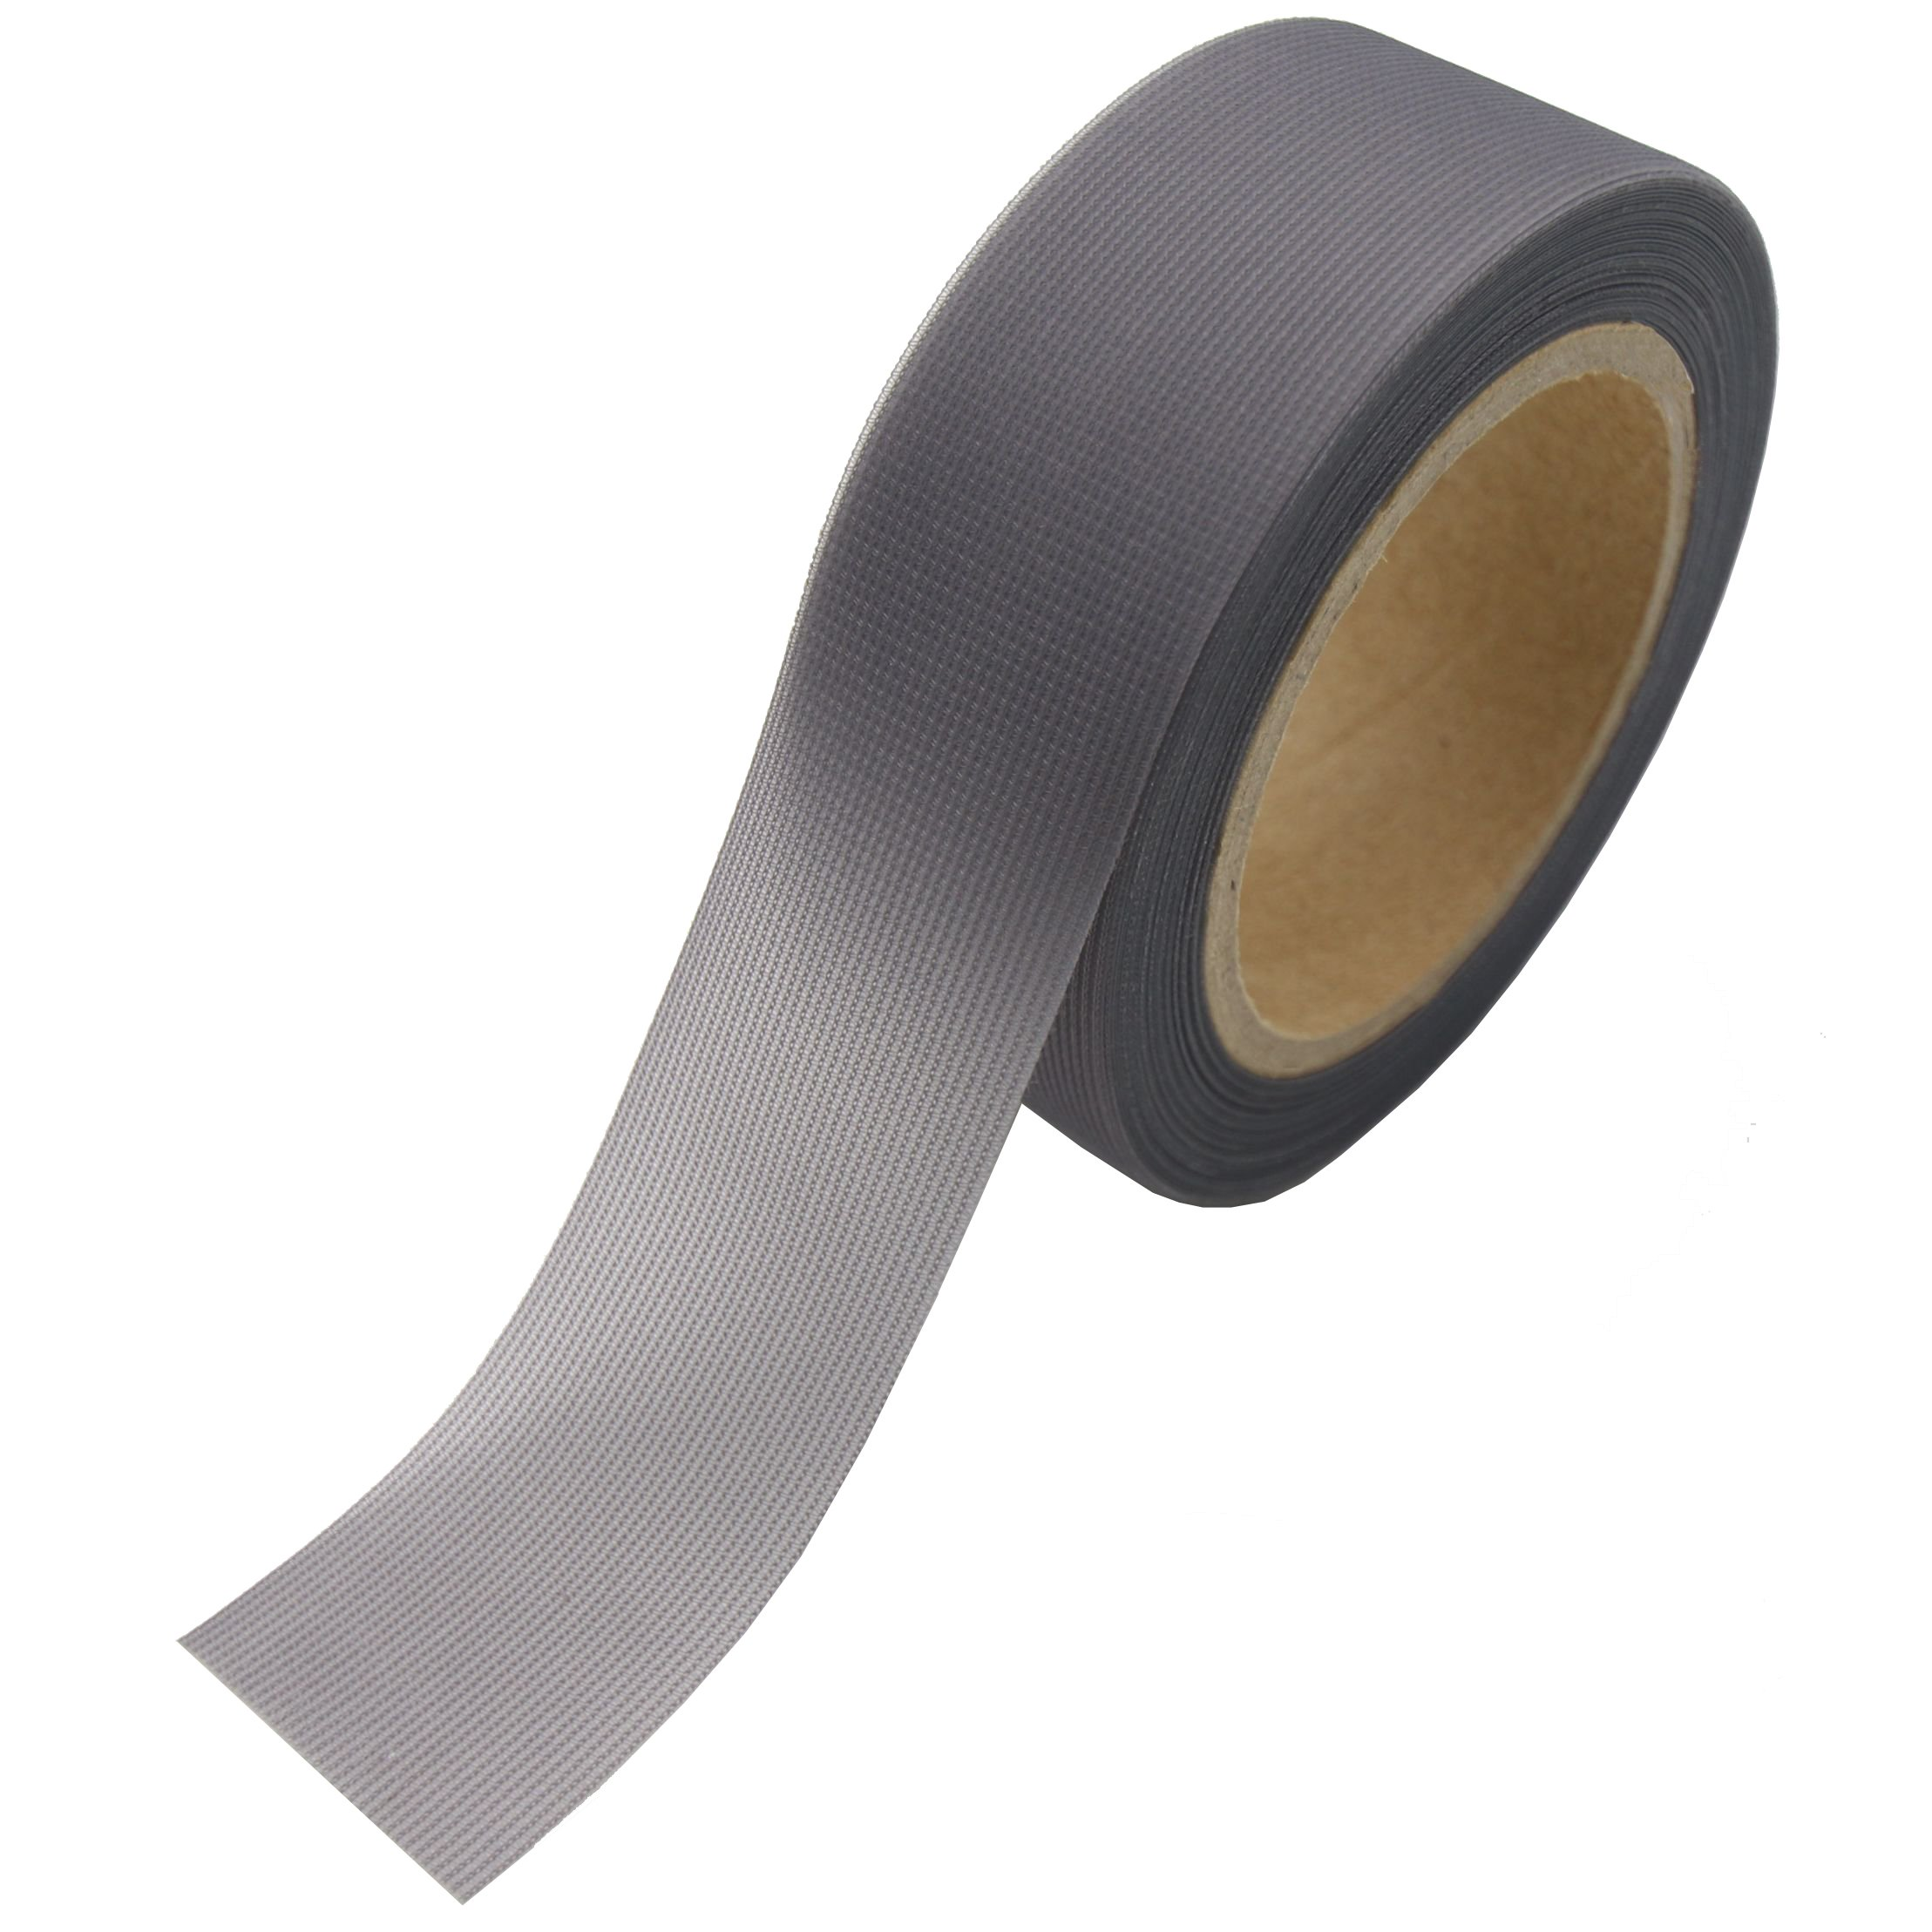 SUNDELY Dark Grey Color Hot Melt Seam Sealing Tape Roll 0.98'' X 16' (25mm X 5m) with 3 Layer for Waterproof Fabrics Sportswear